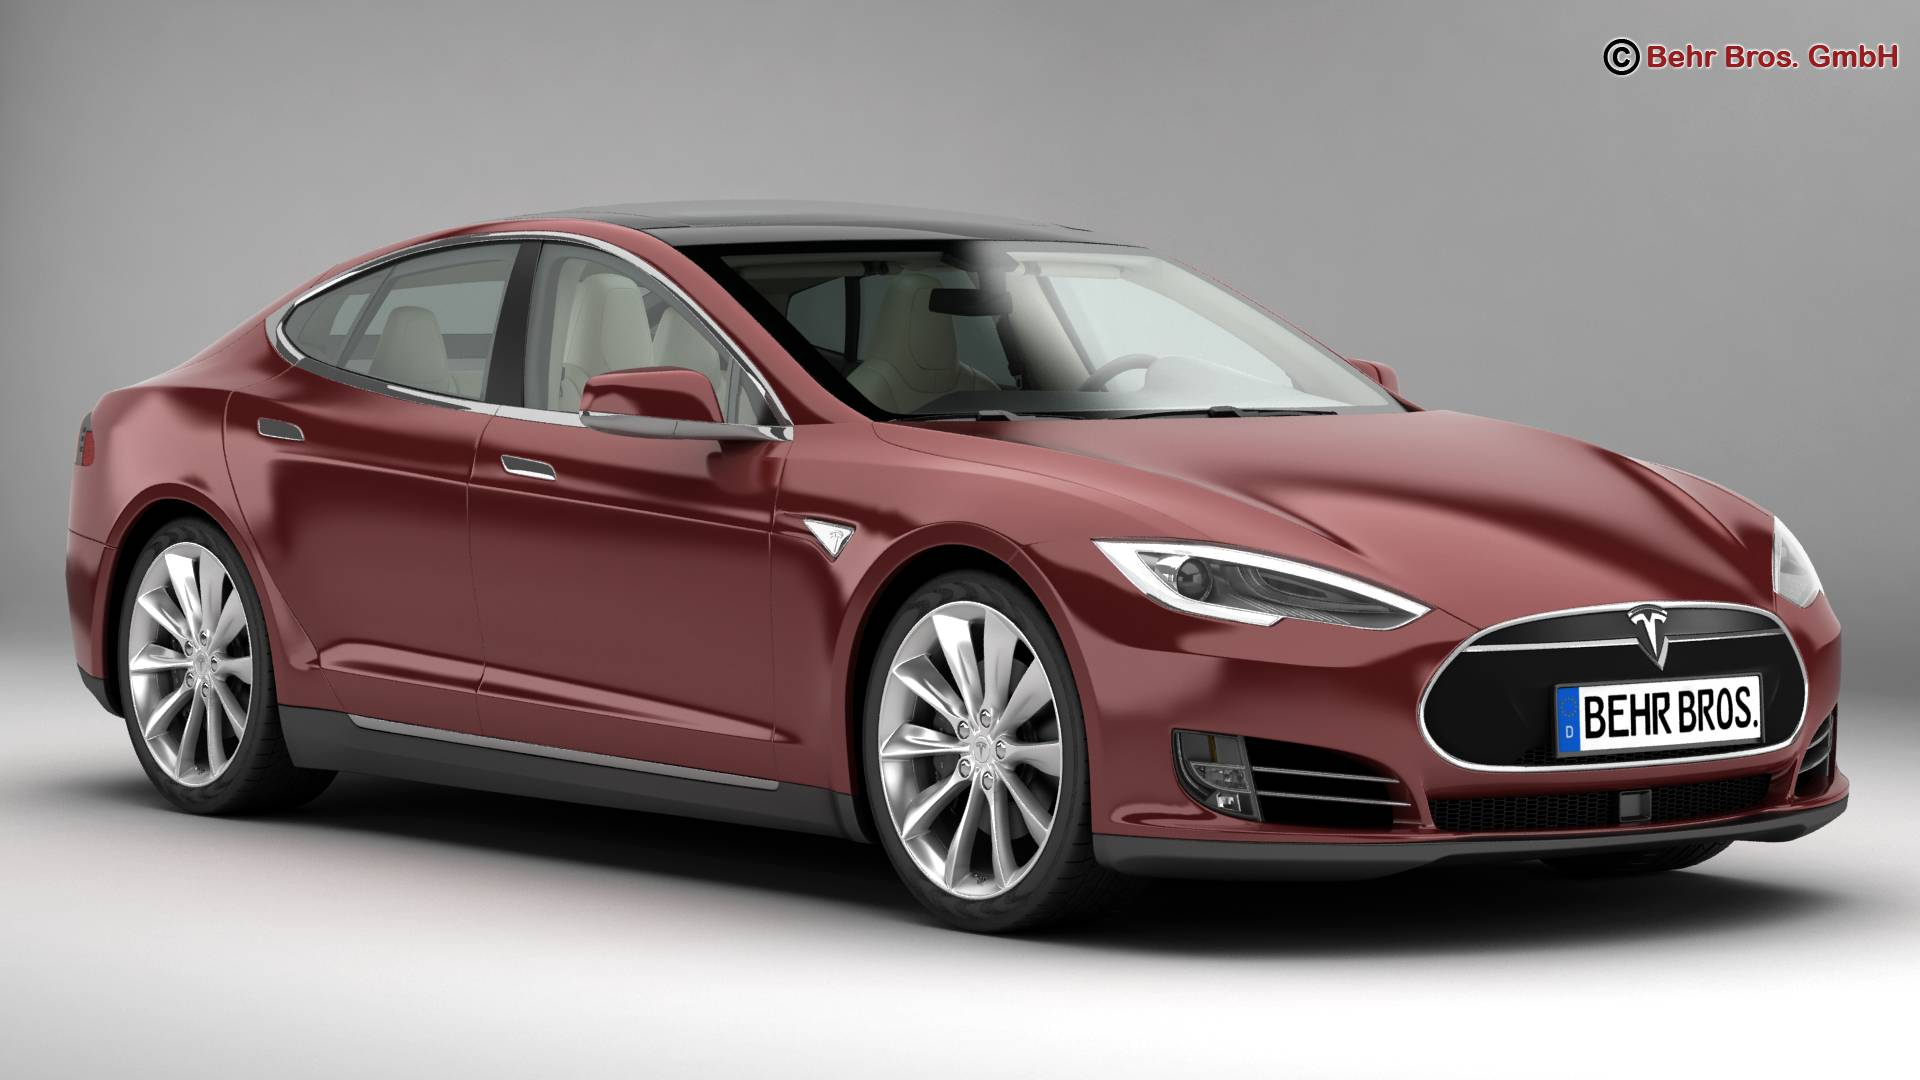 tesla model s 2015 3d model 3ds max fbx c4d lwo ma mb obj 217606